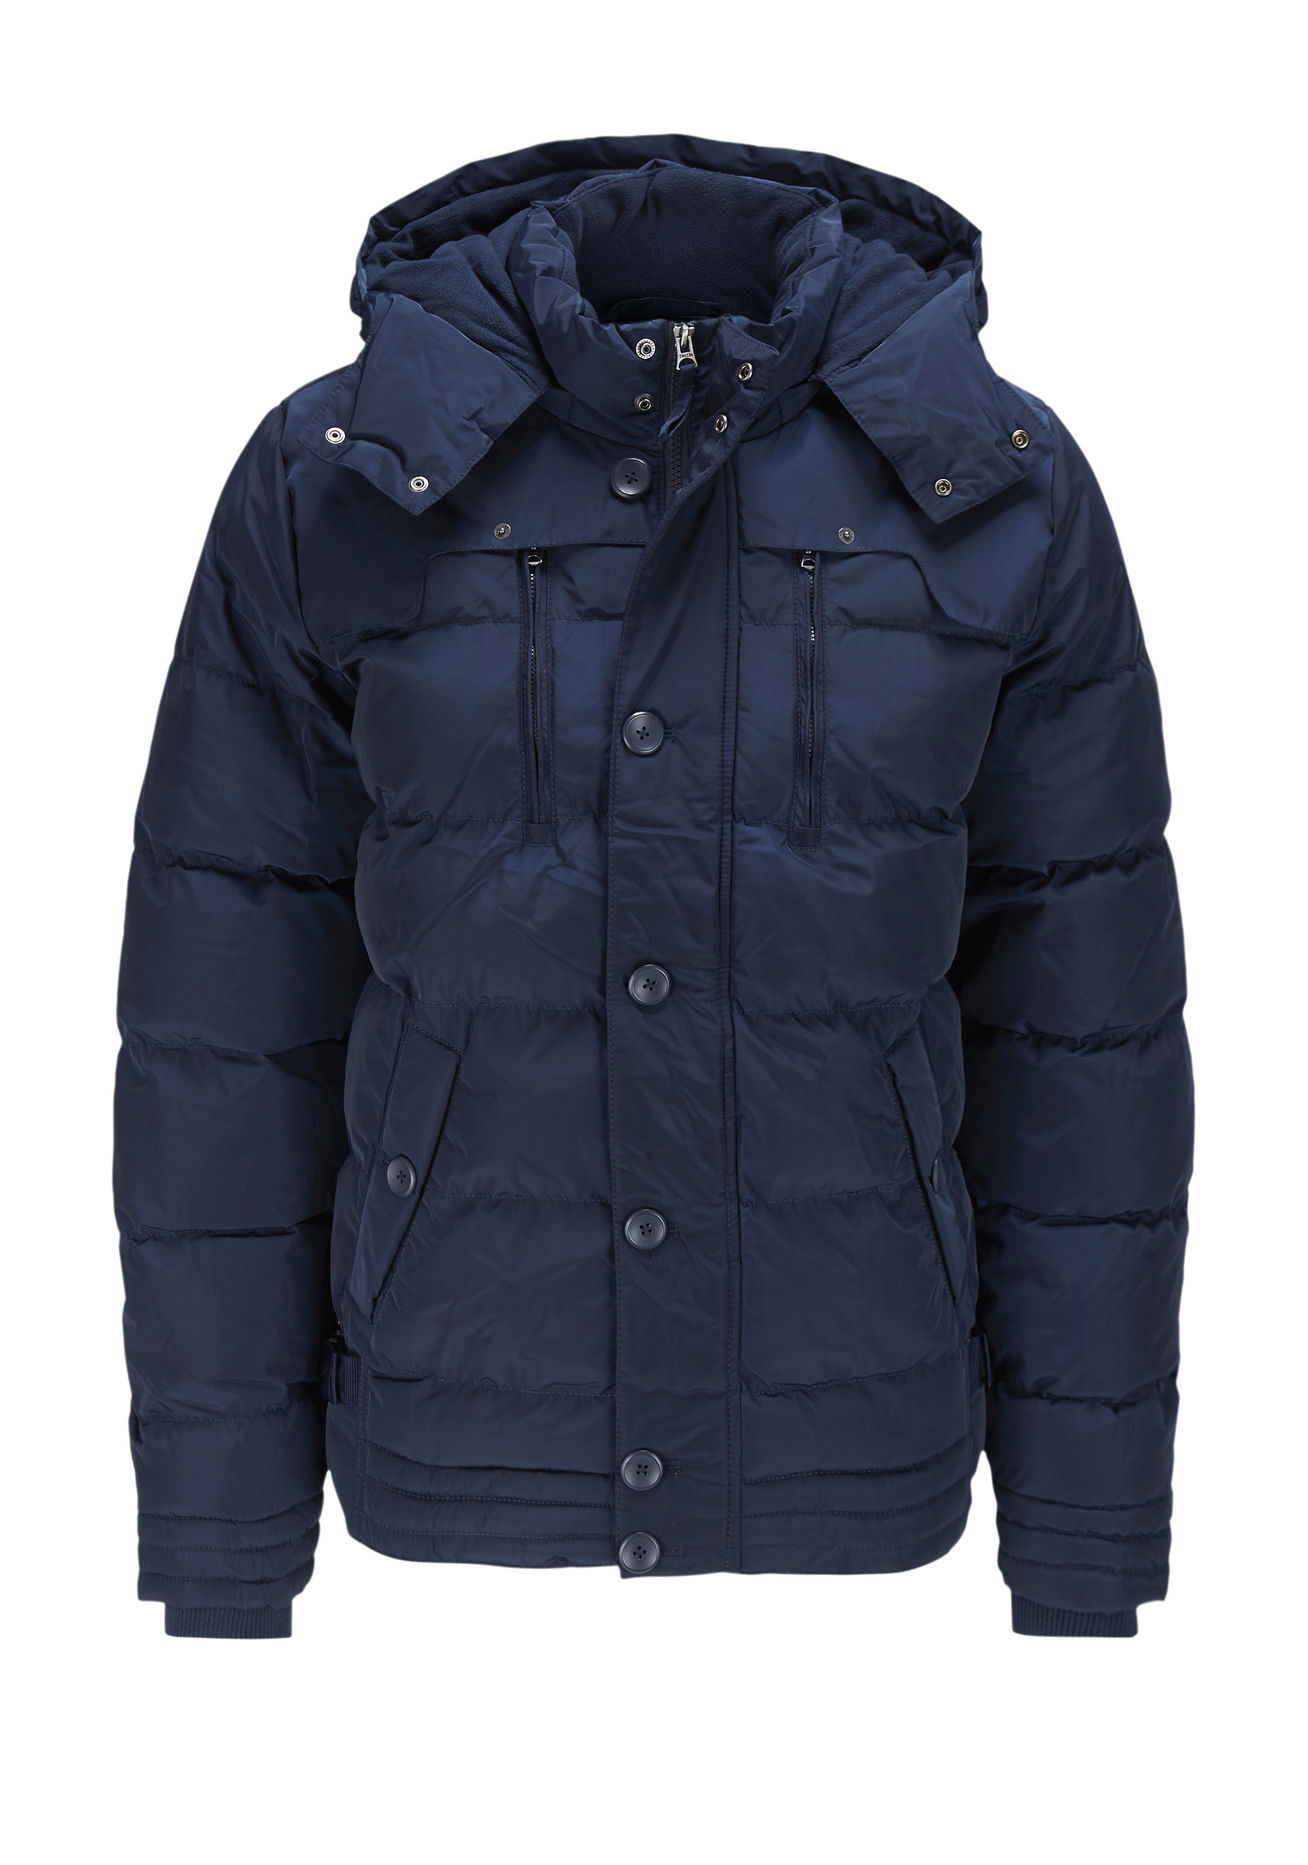 Details About Show Xxlwinter Style Mens Original JacketSizeS Quilted Mustang To Title Jacket Hooded 8mNwn0Ov